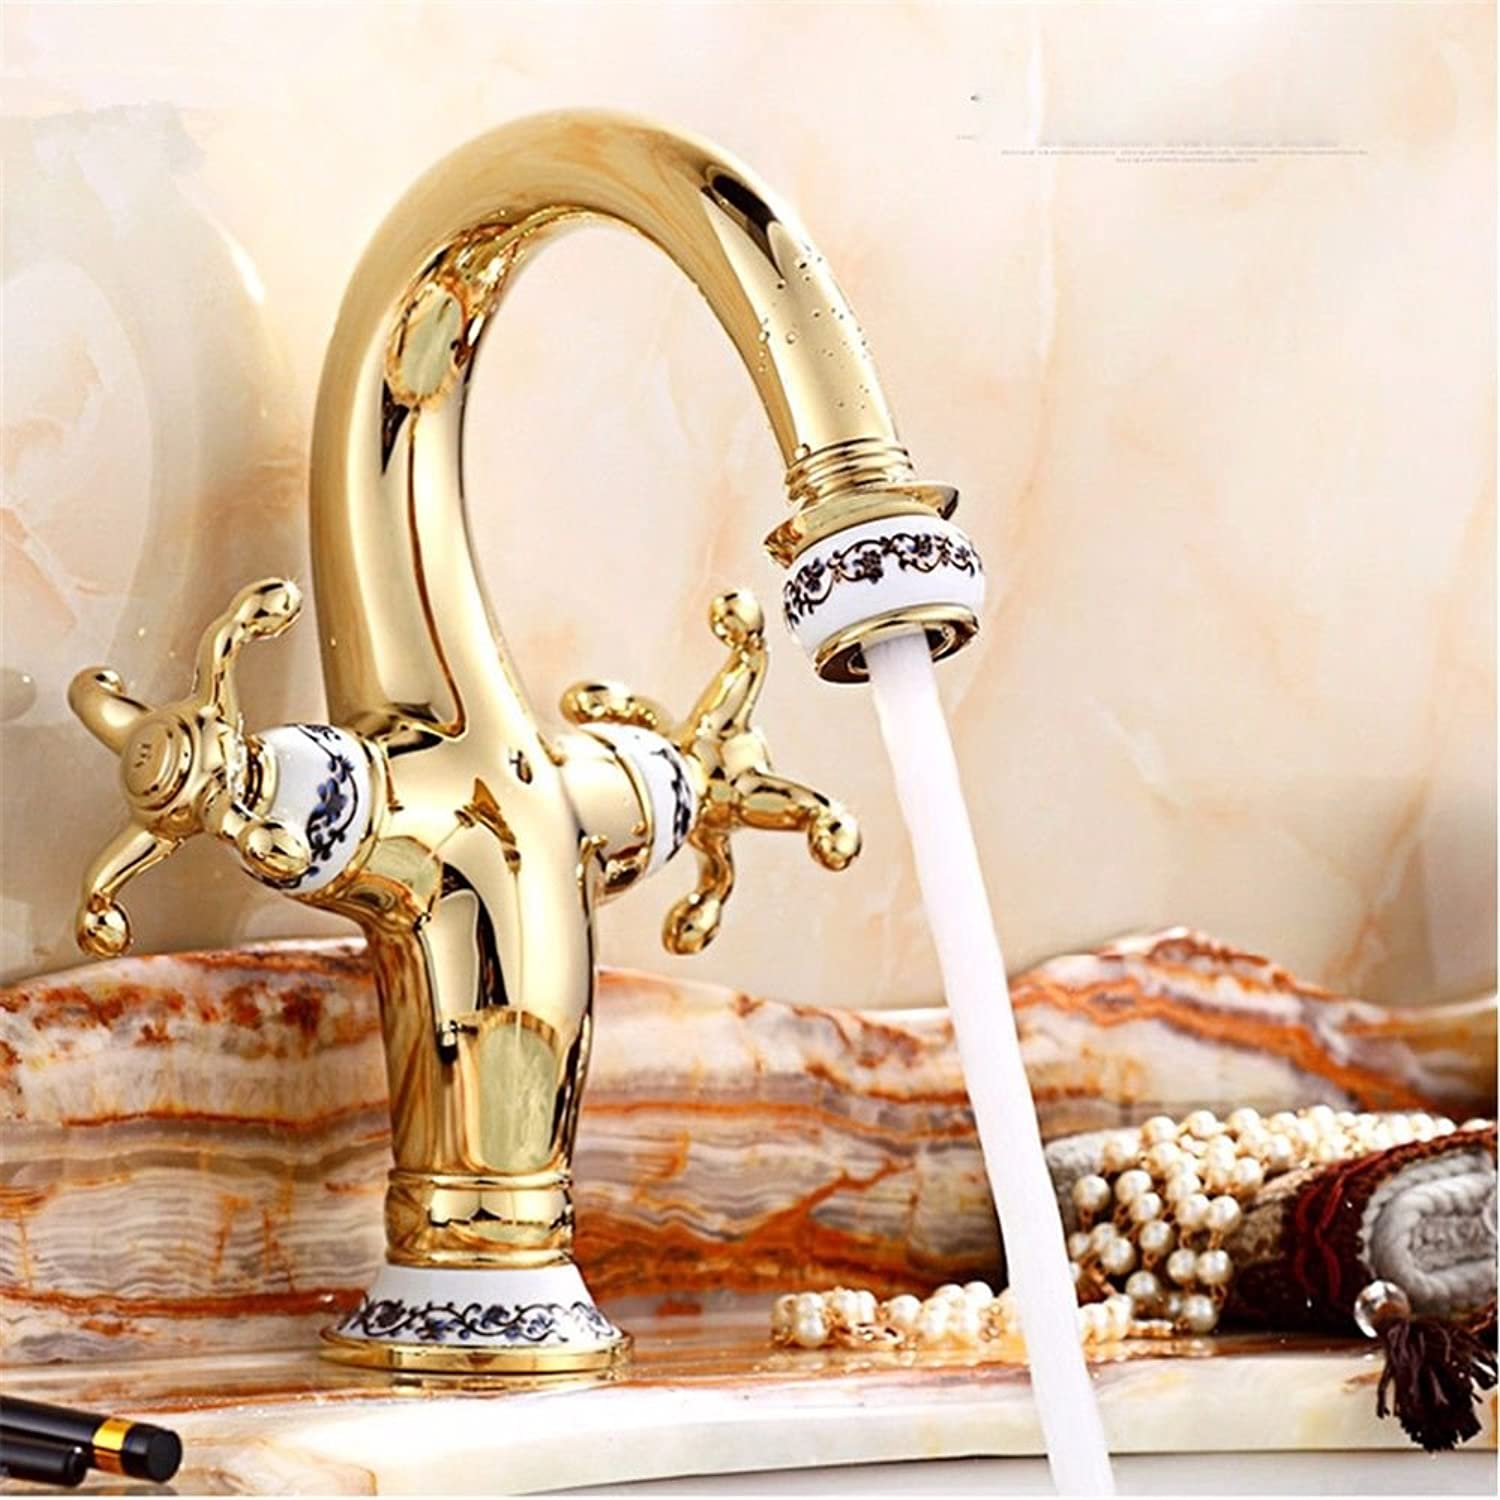 Fbict European Antique Basin Hot and Cold Water Faucet gold Single Hole bluee and White Porcelain Bathroom for Kitchen Bathroom Faucet Bid Tap